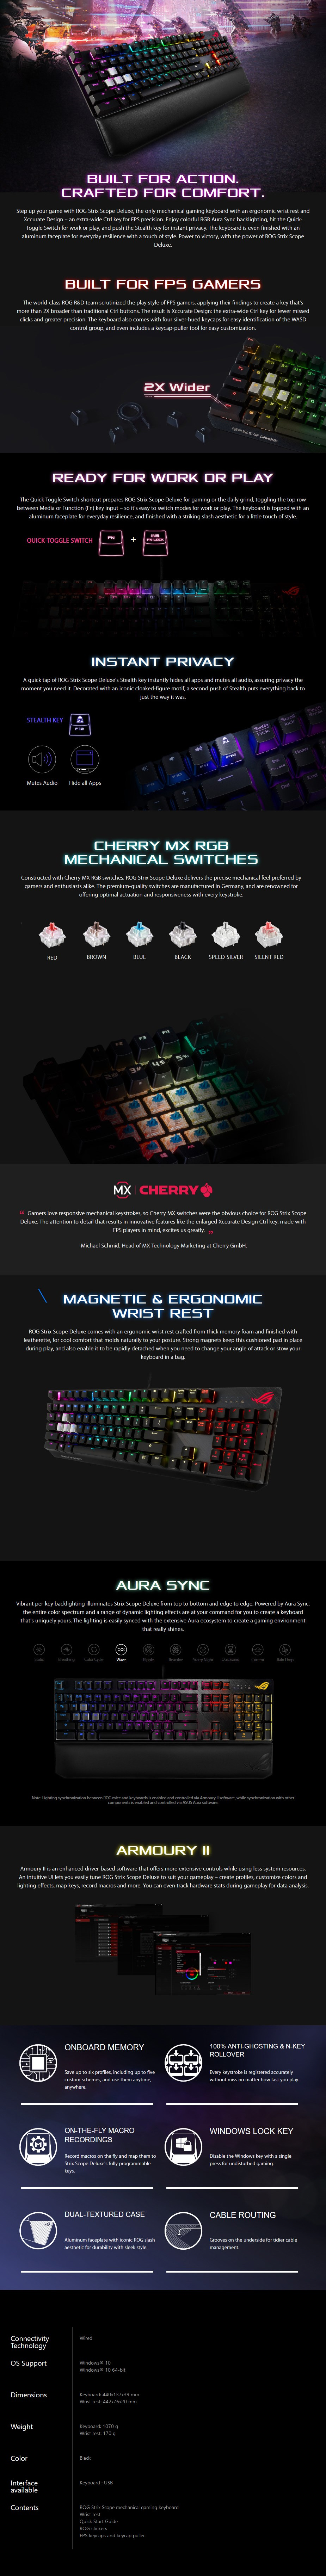 ASUS ROG Strix Scope RGB Mechanical Gaming Keyboard - Cherry MX Red Switches - Overview 1